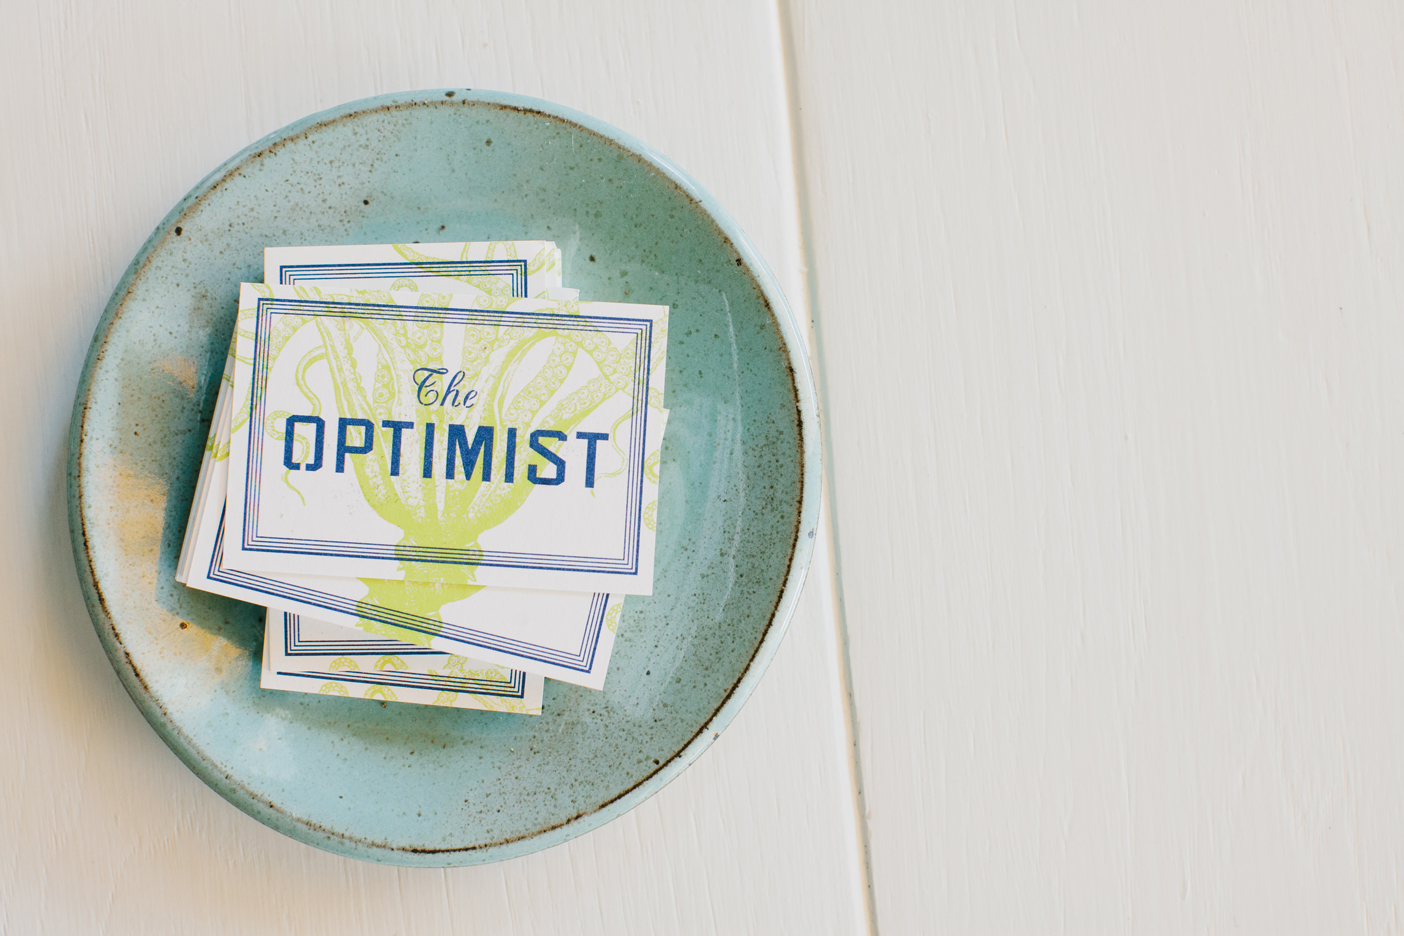 The Oyster bar at The Optimist | Smith Hanes. business card detail